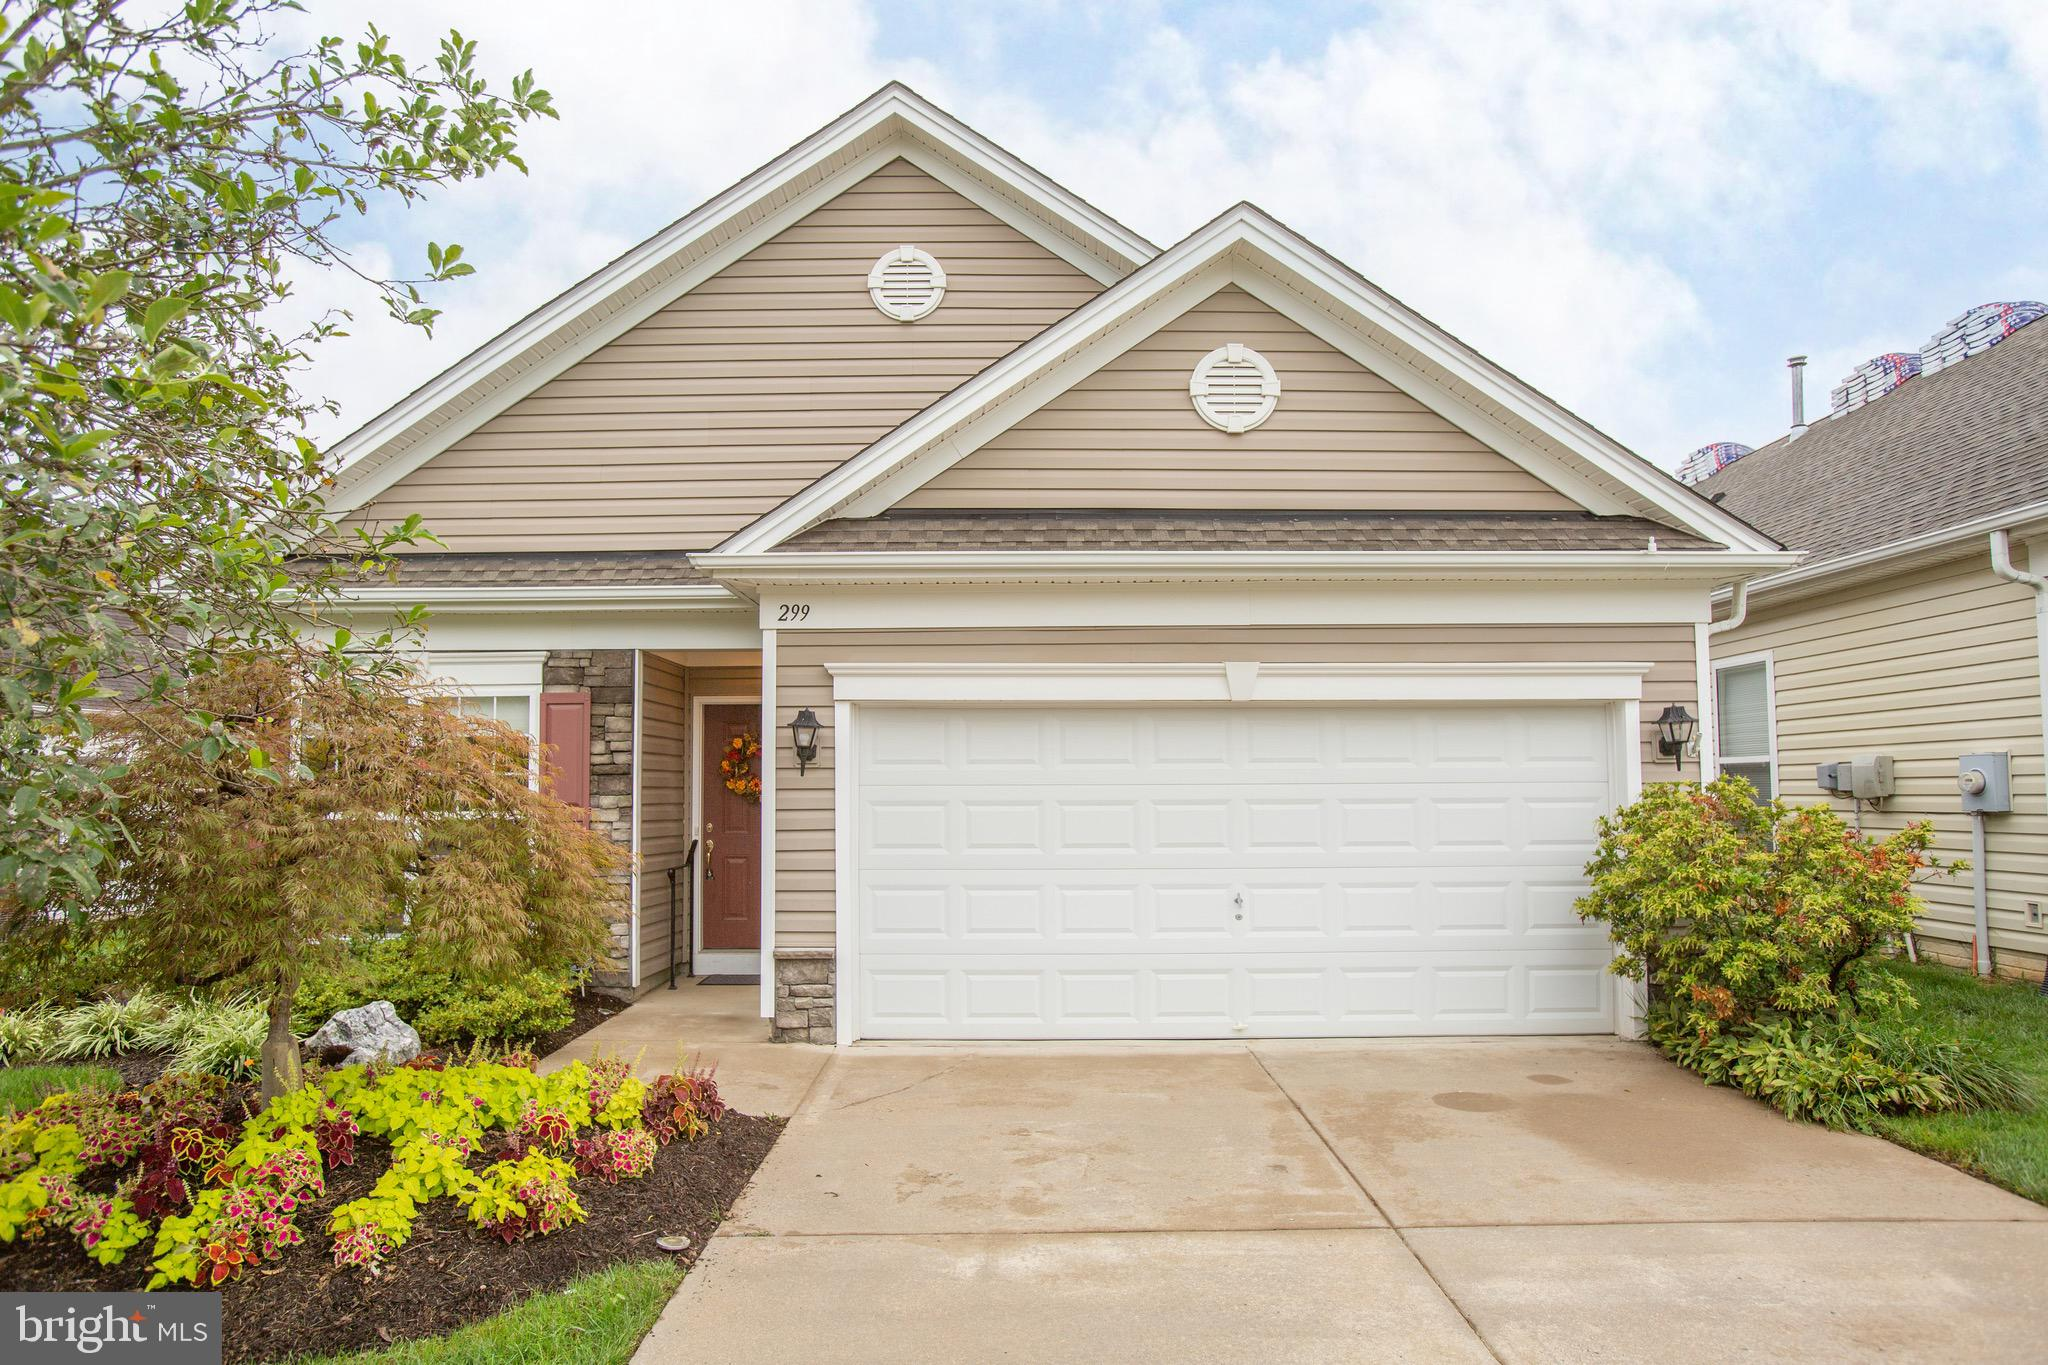 Welcome to Falls Run, one of Stafford county's preferred Active Adult communities. This villa has be